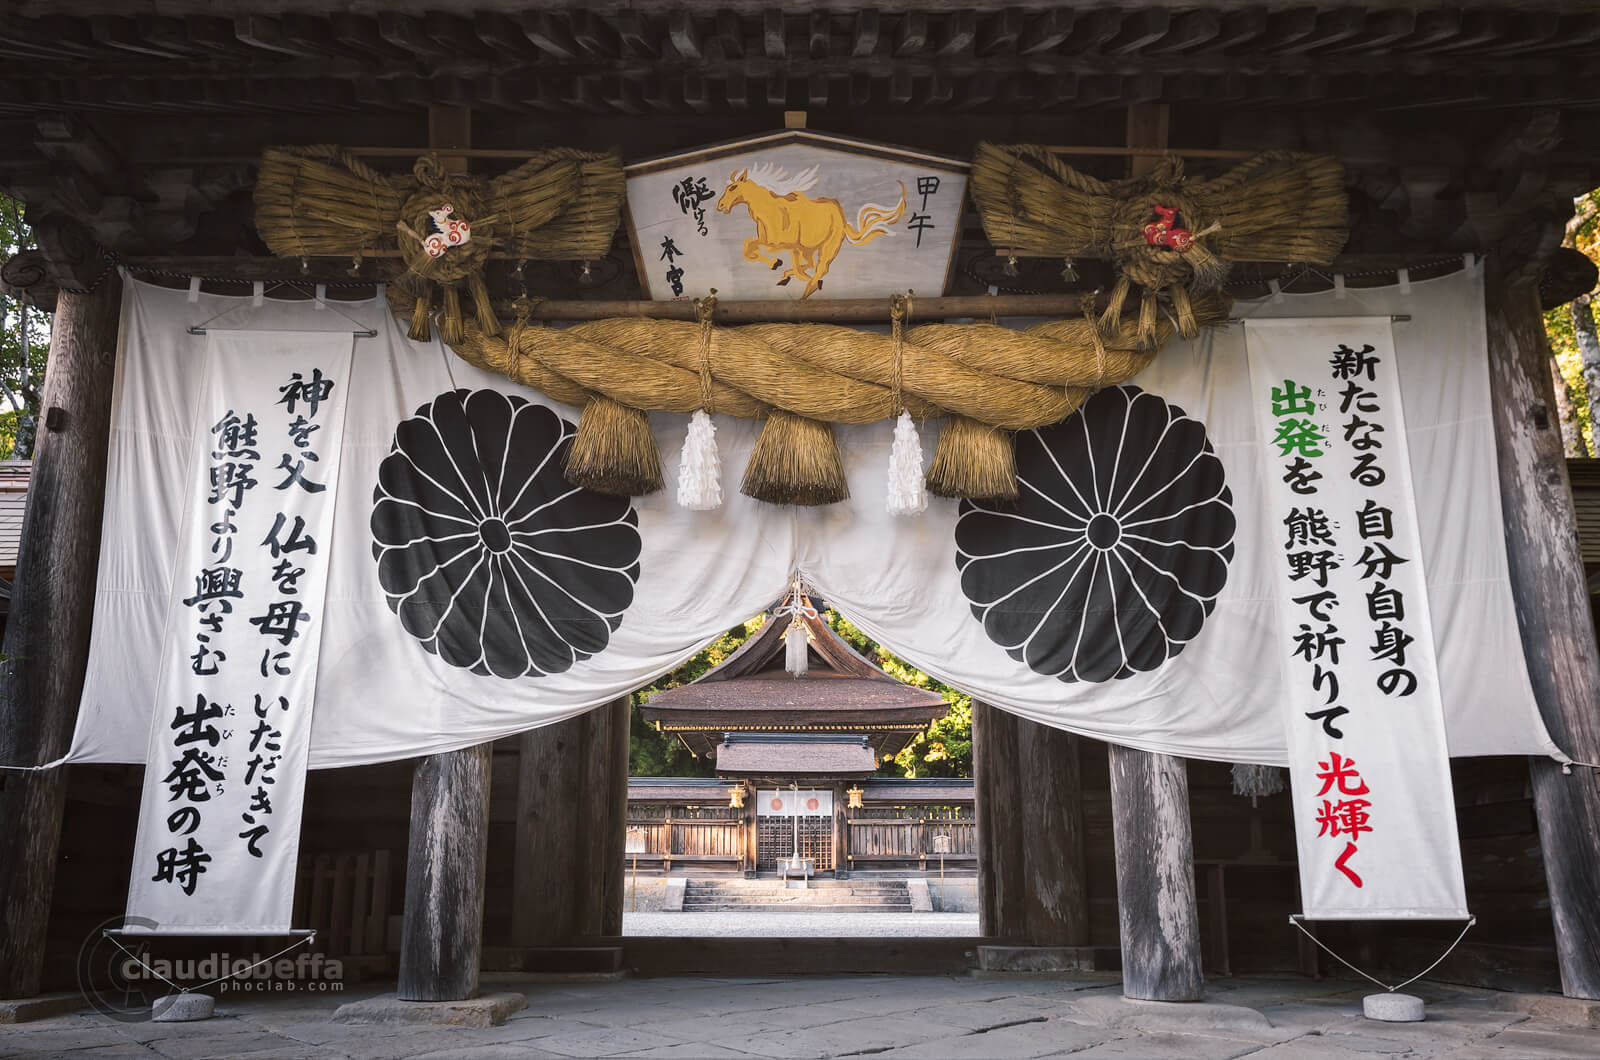 Hongu taisha, Shrine, Kii peninsula, Kumano, Japan, Shinto, Gate, Shimenawa, Travel